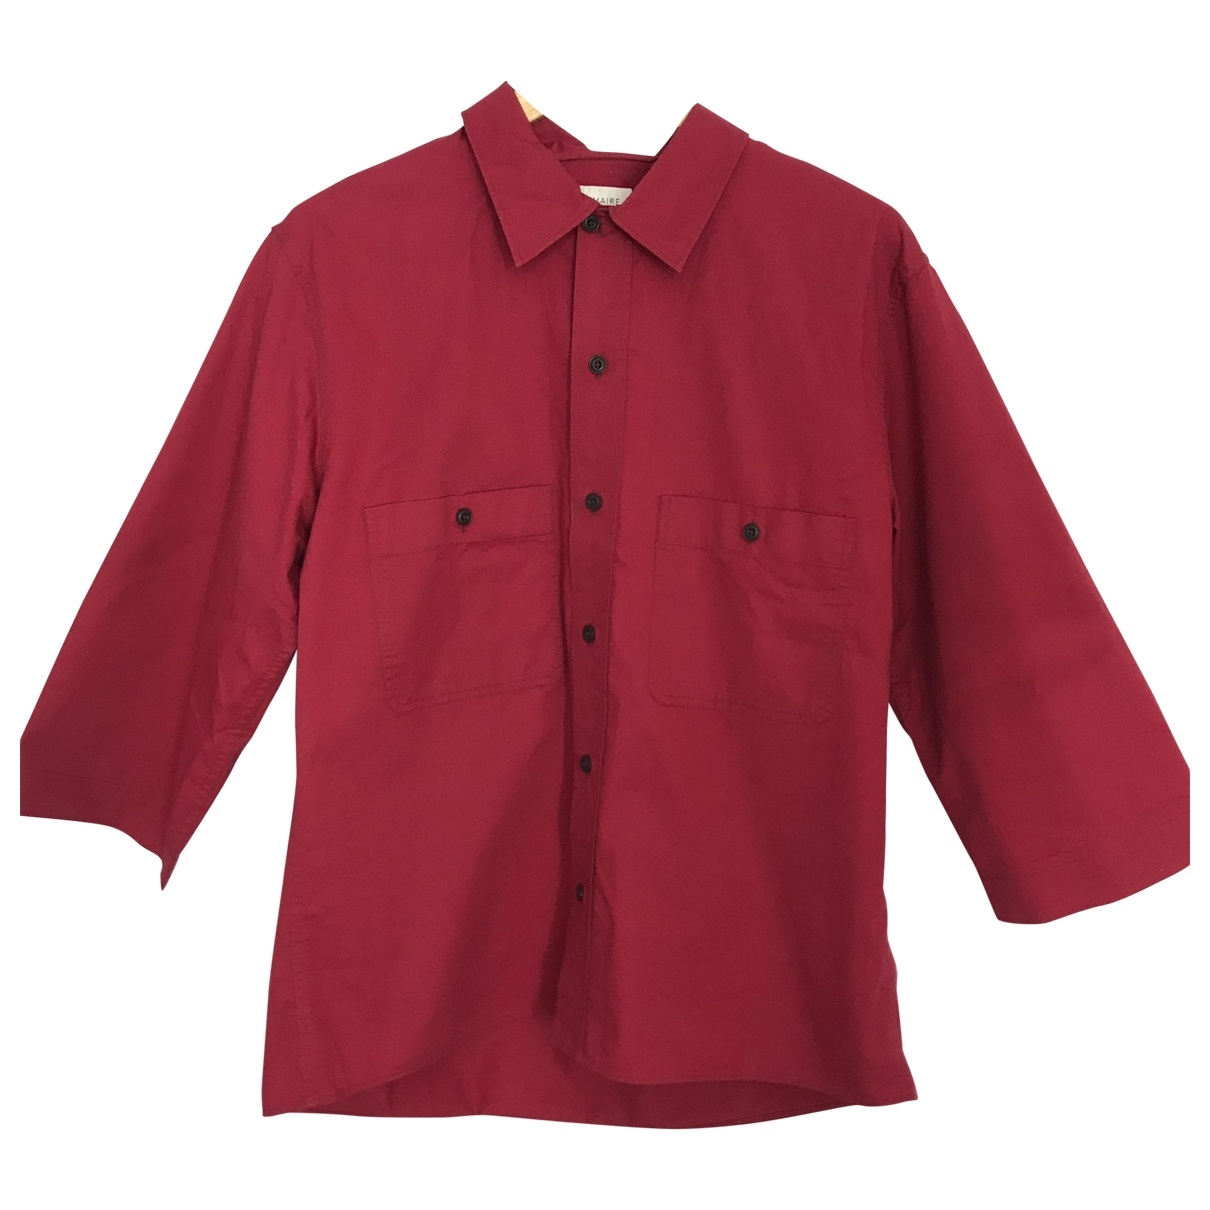 Lemaire \N Pink Cotton Shirts for Men S International